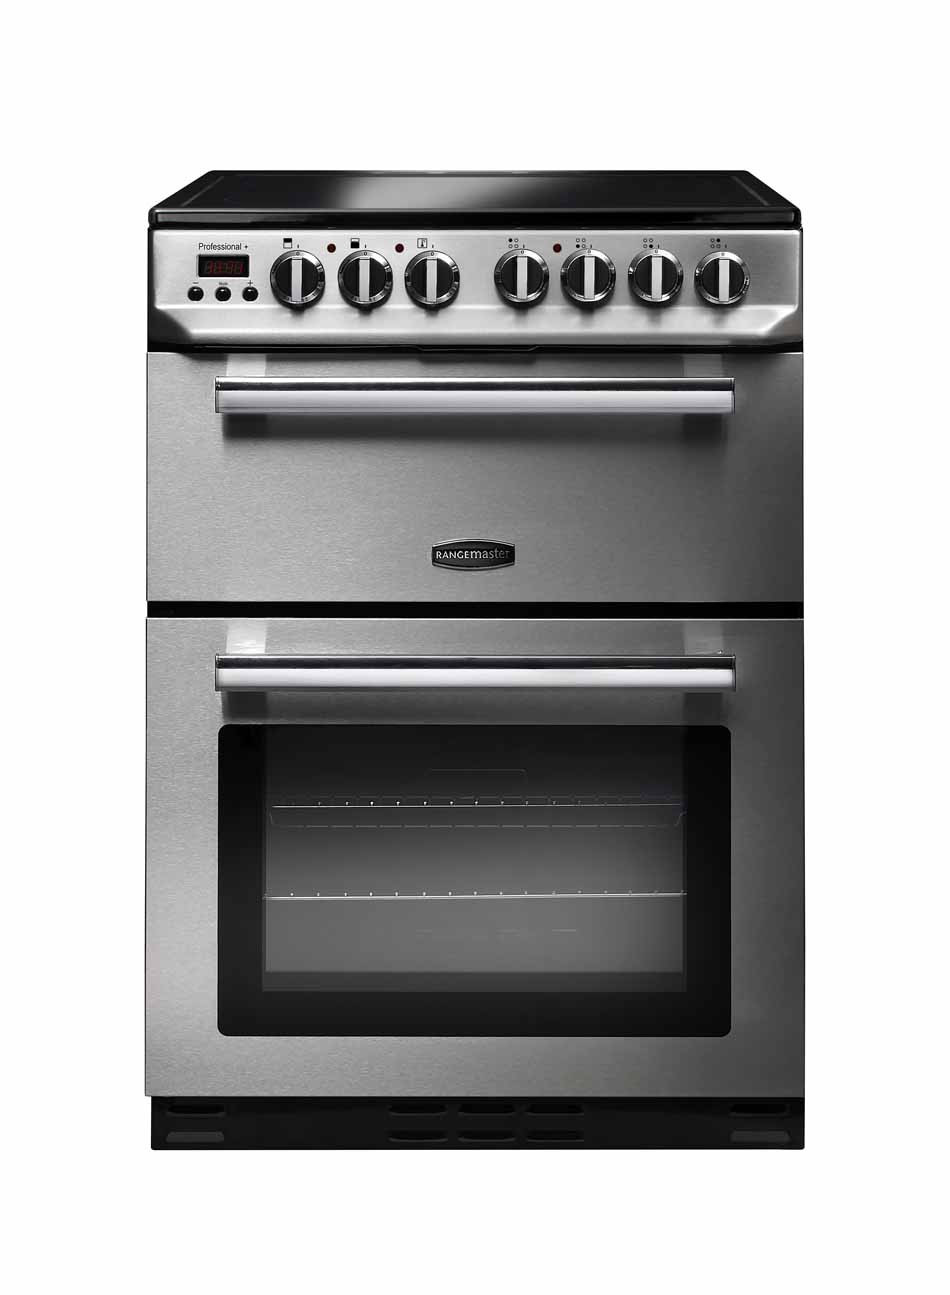 Rangemaster Professional Plus 60 Ceramic Range Cooker Stainless Steel/Chrome Trim